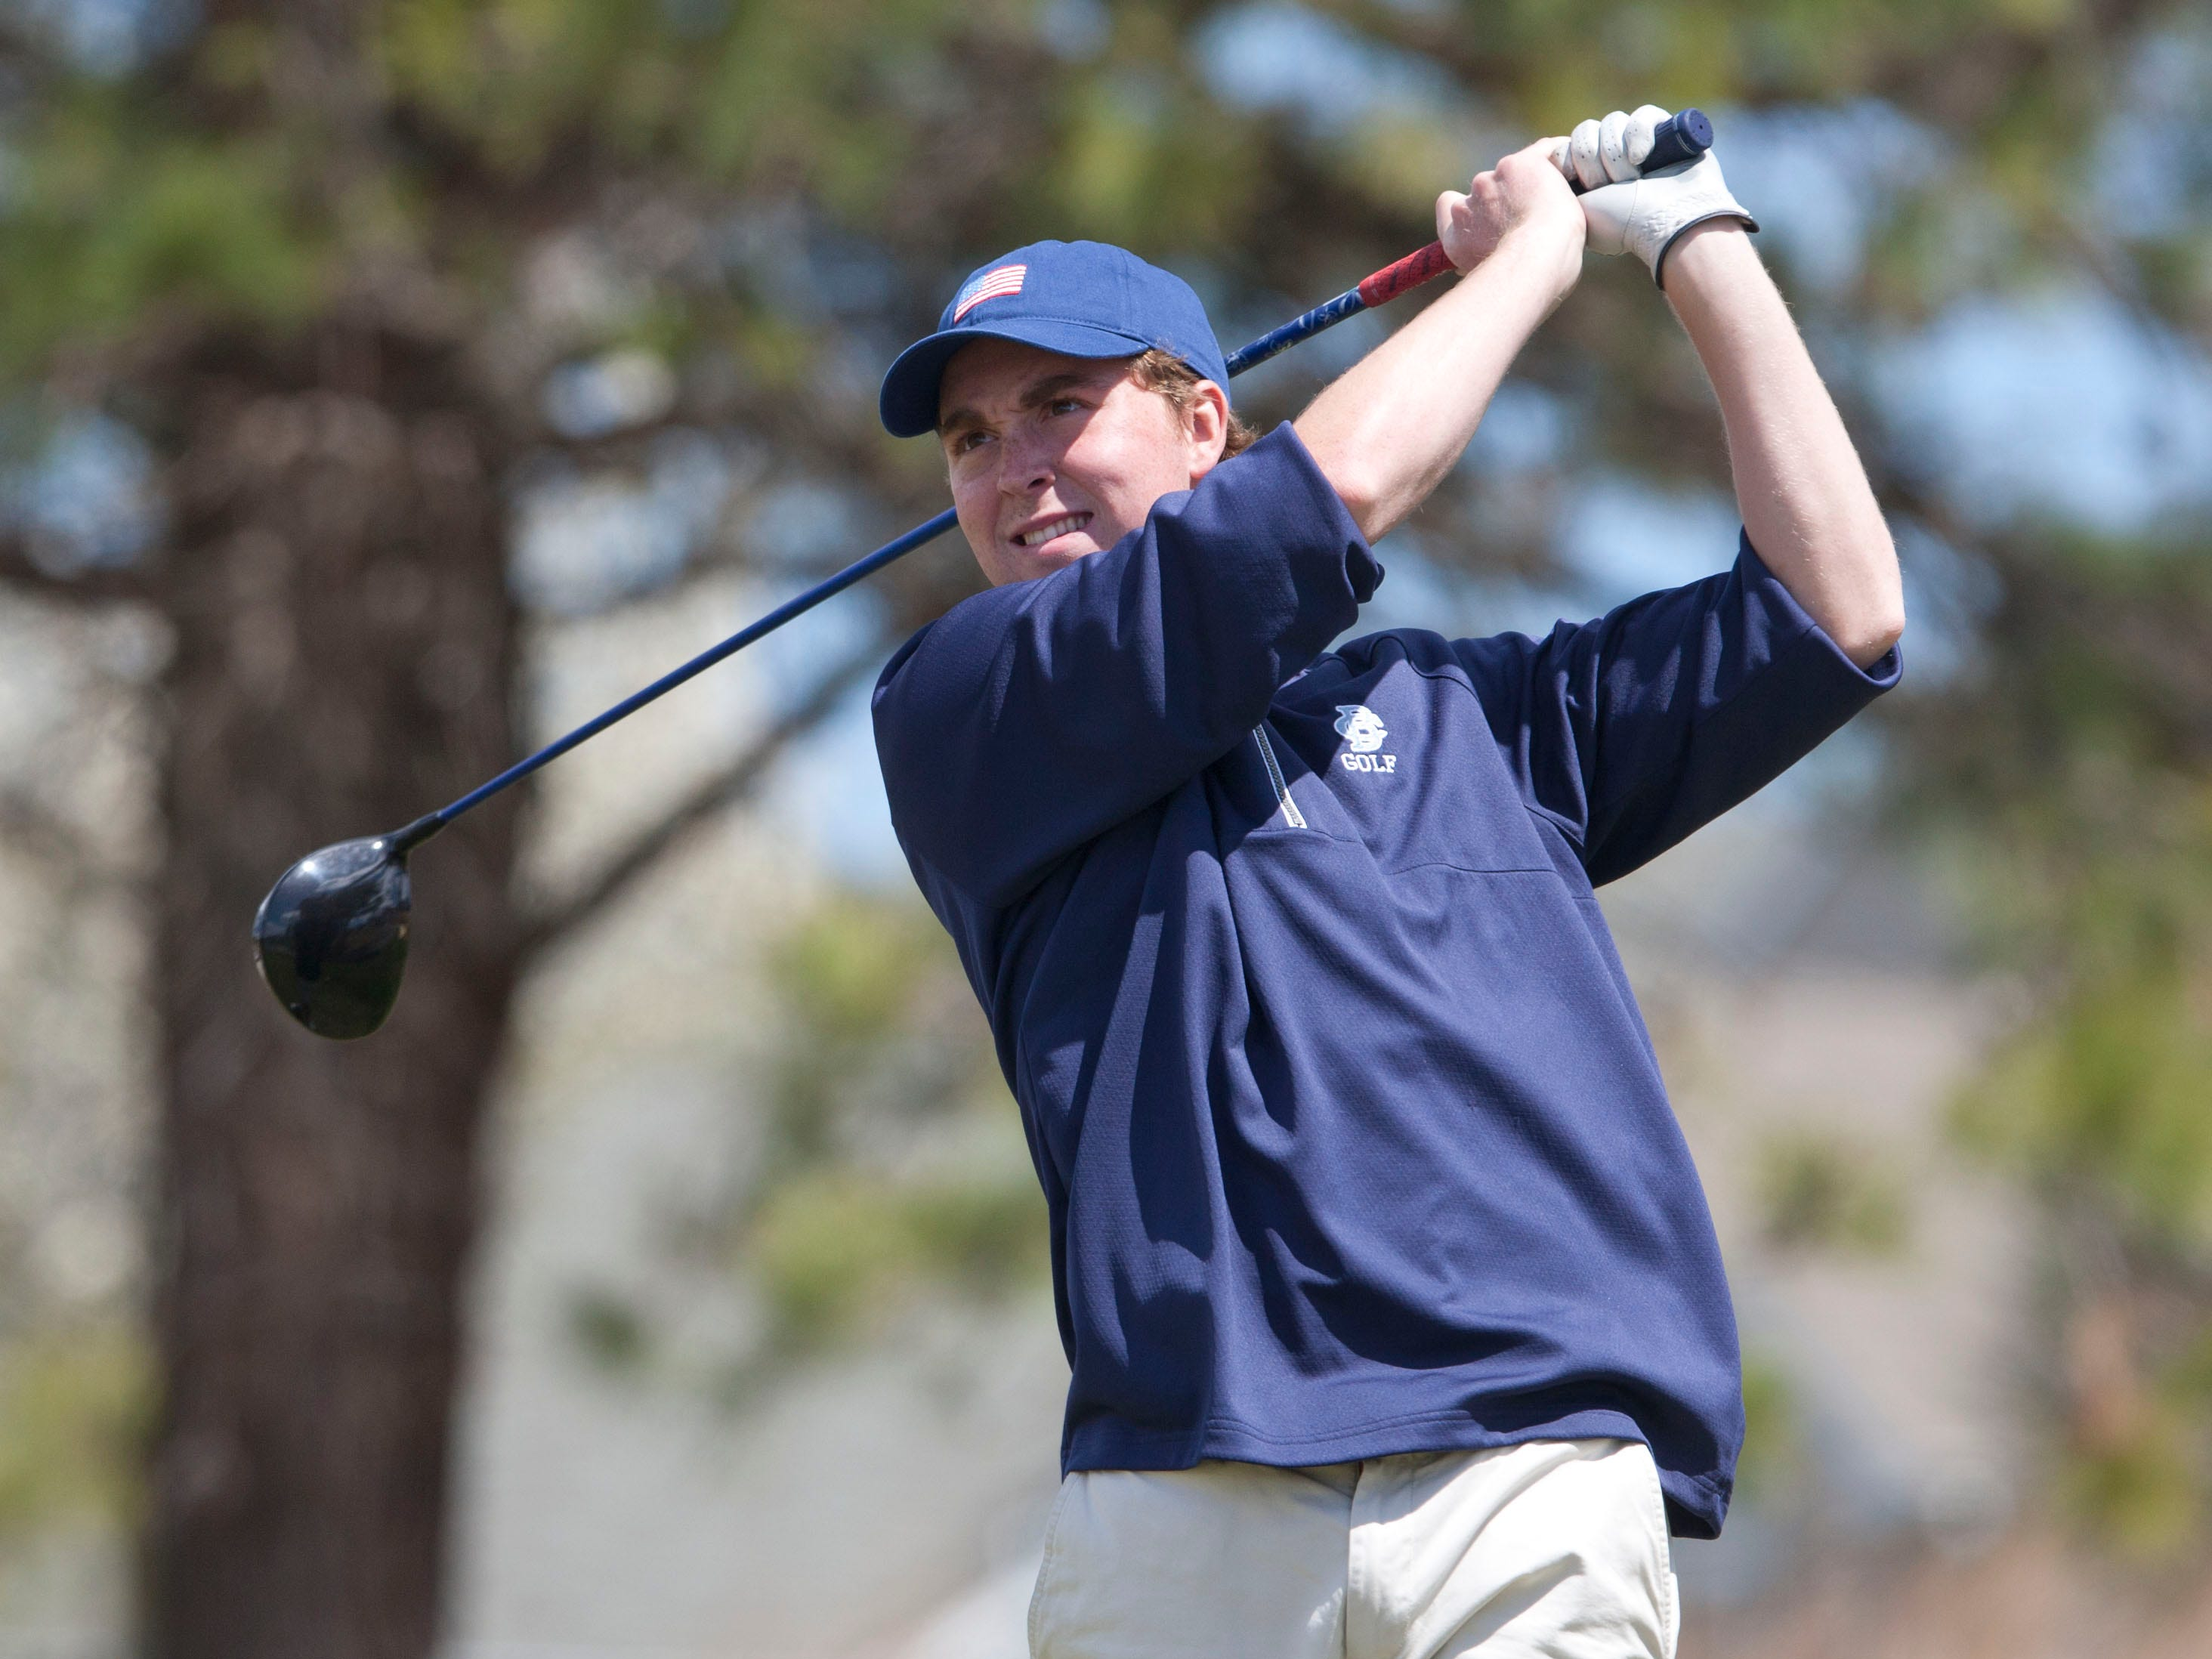 CBA's Sean Farren fired a 75 at the Shore Conference Tournament at Eagle Ridge in Lakewood on Tuesday, leading the Colts to the team title while finishing tied for fourth overall.